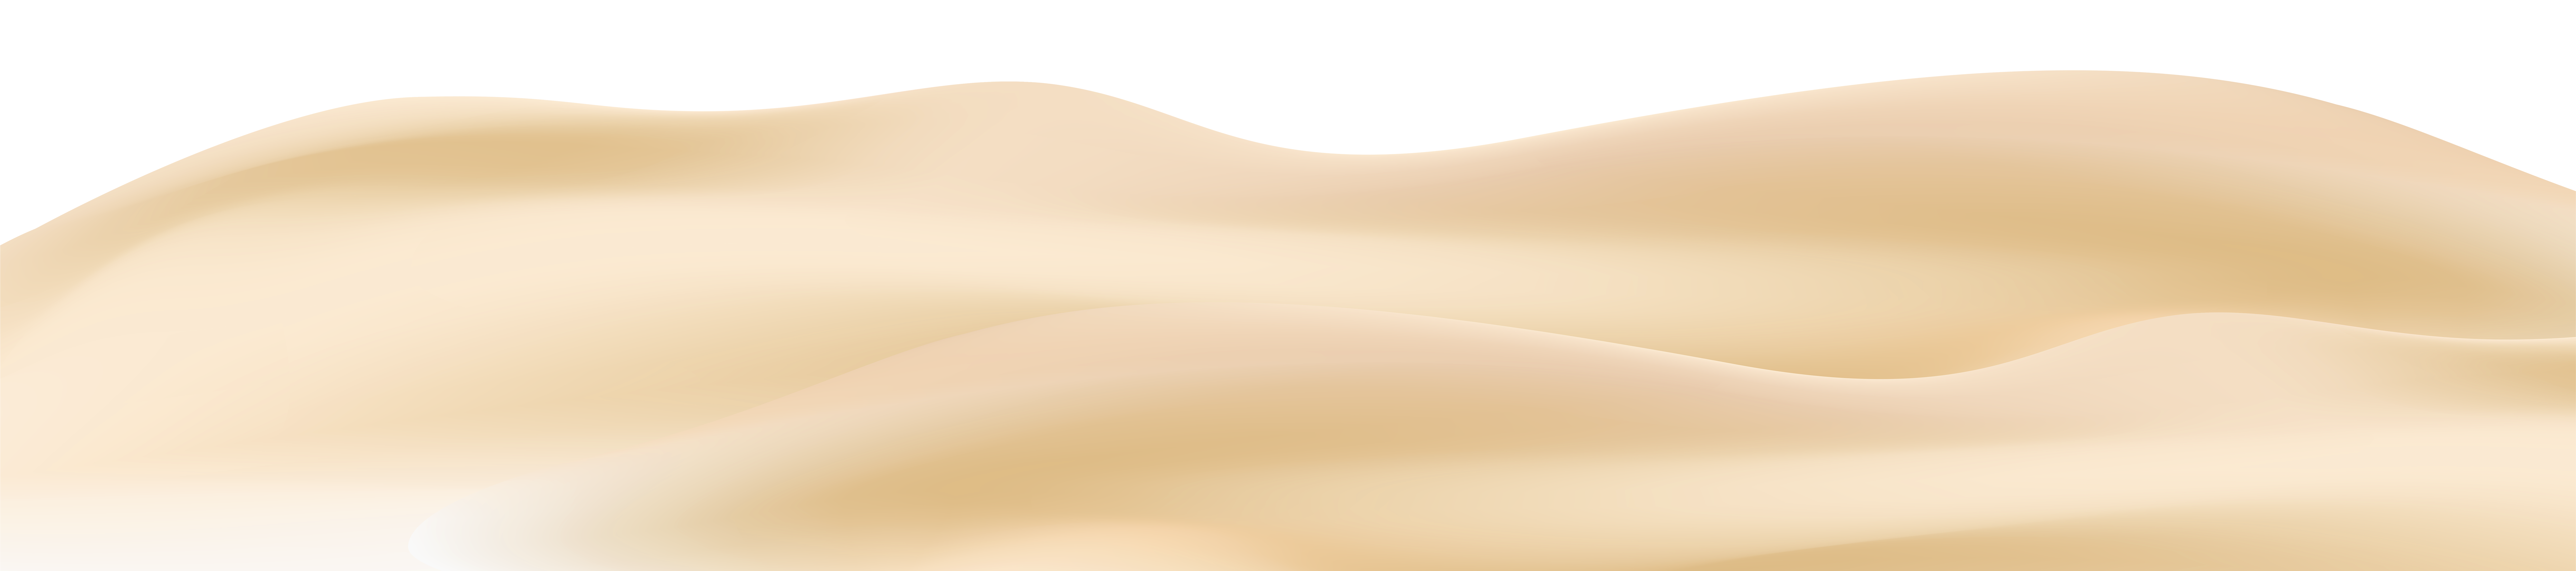 collection of sand. Environment clipart beach